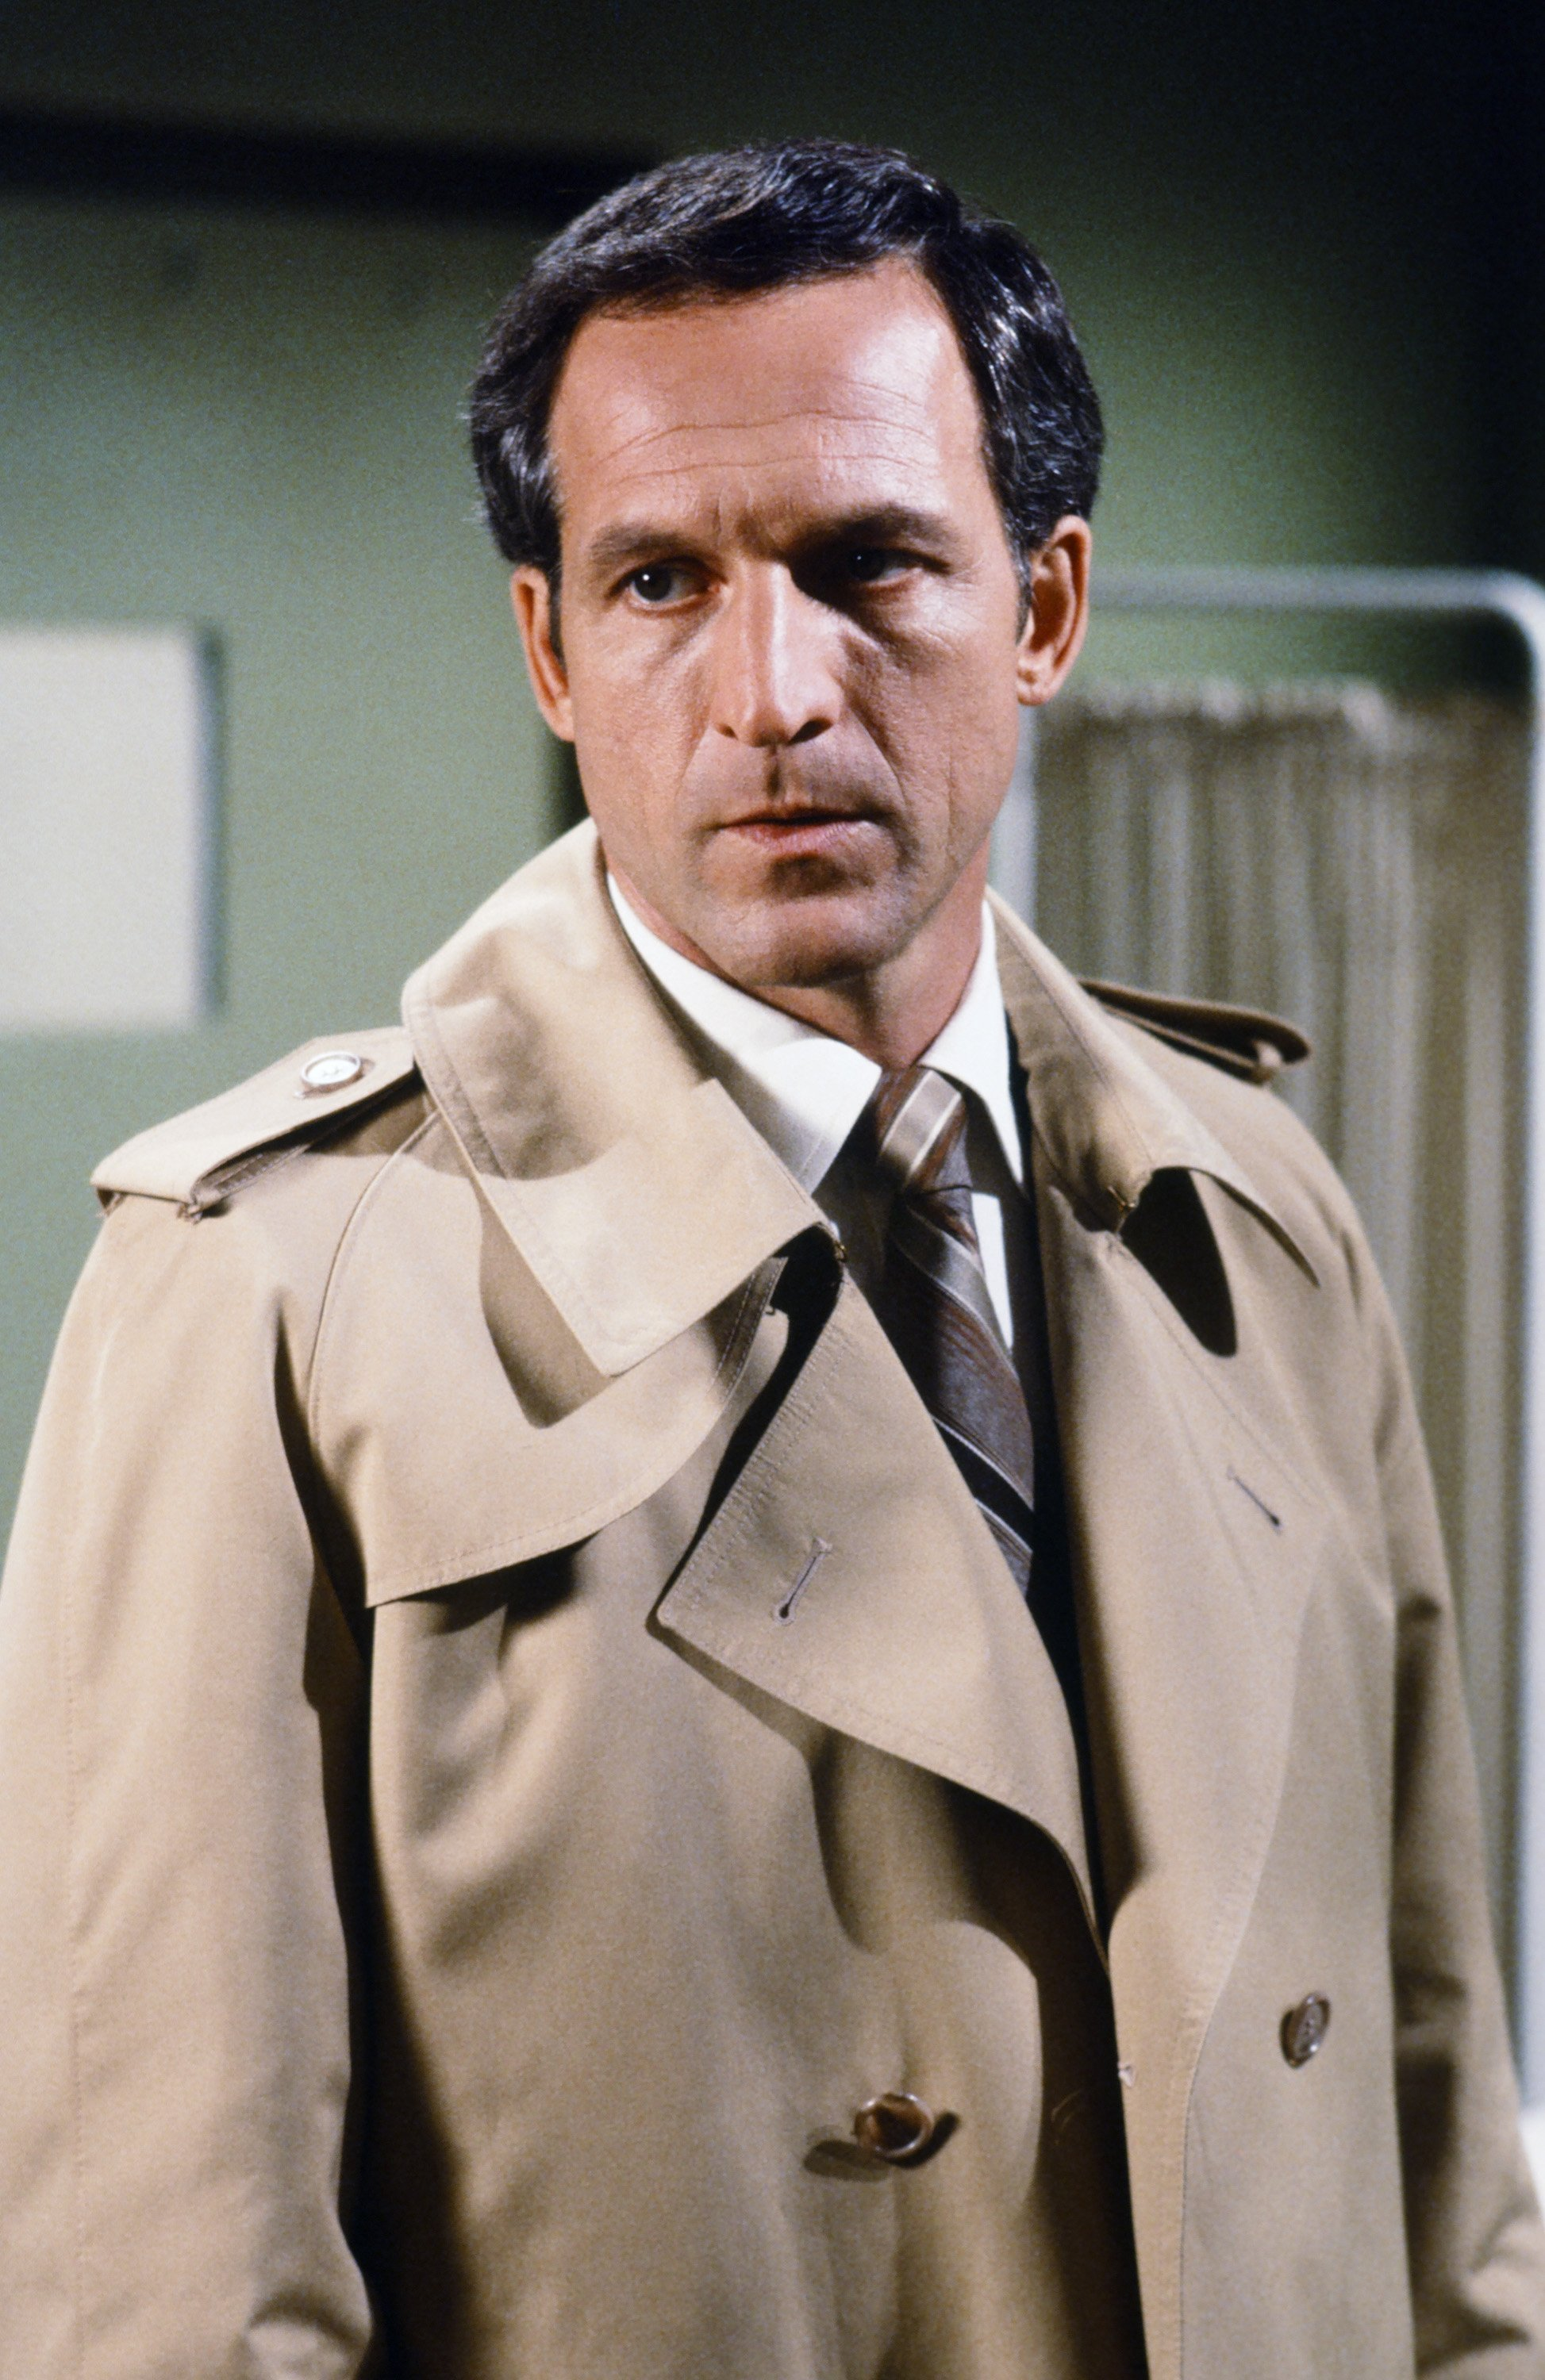 Daniel J. Travanti as Capt. Frank Furillo in the 80s | Photo: Getty Images/Global Images Ukraine